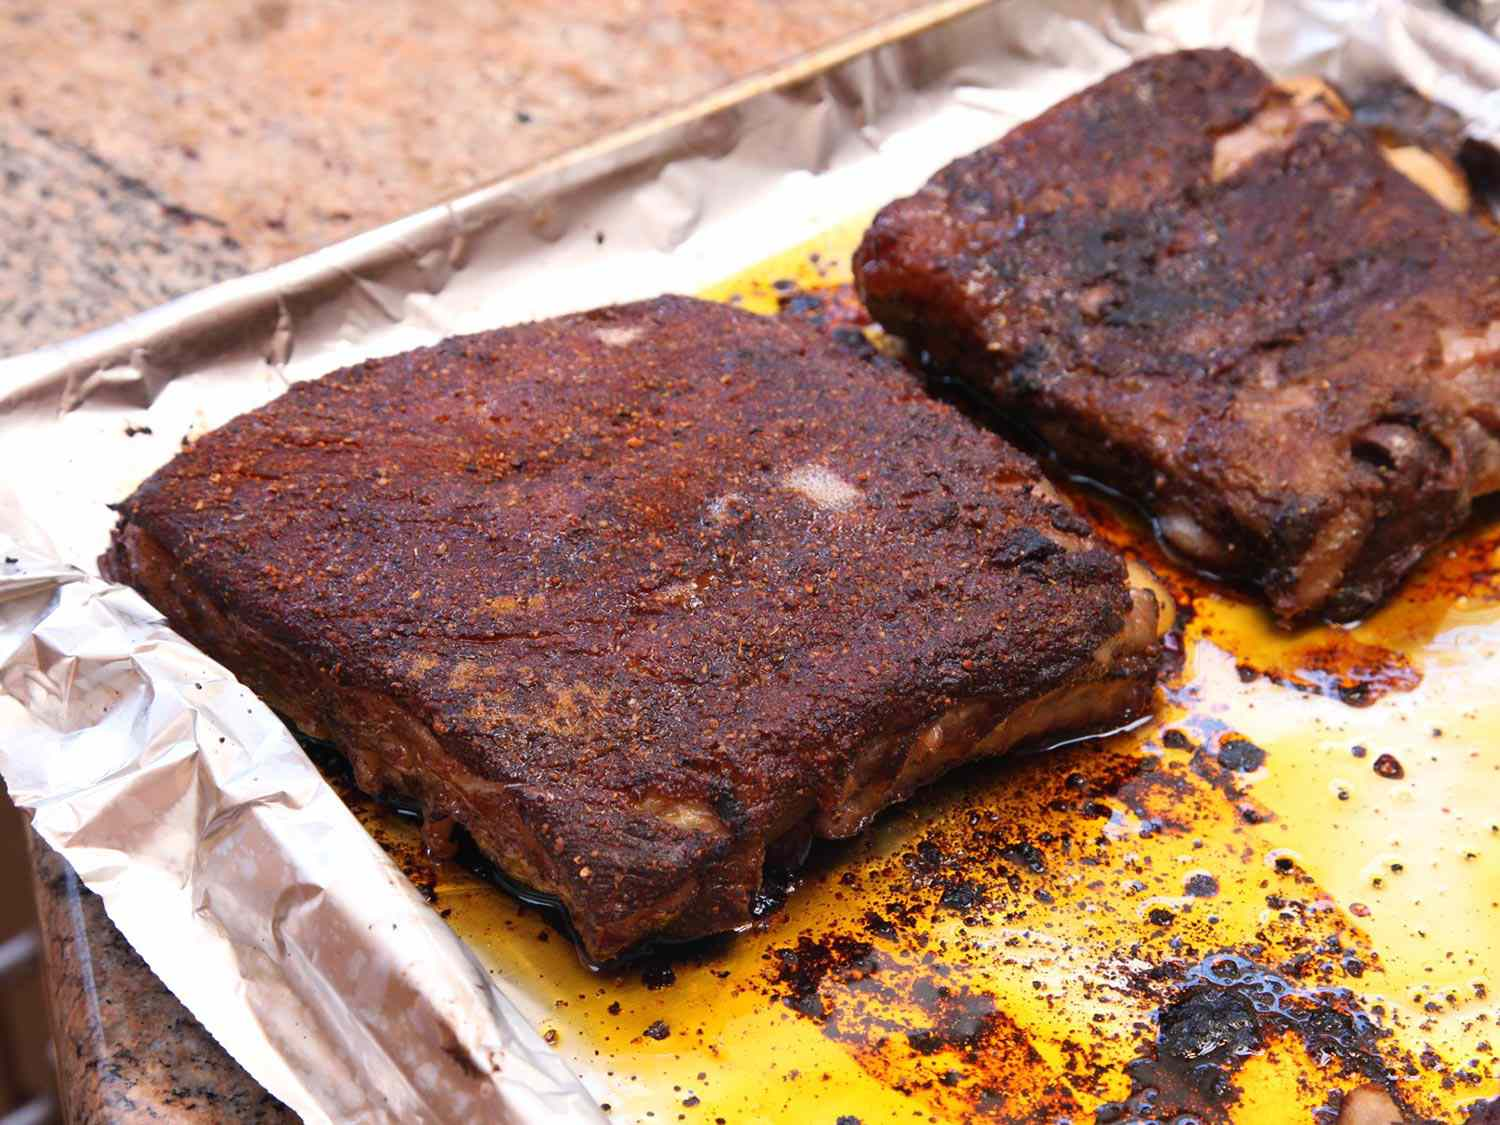 Sous vide pork ribs browned in the oven